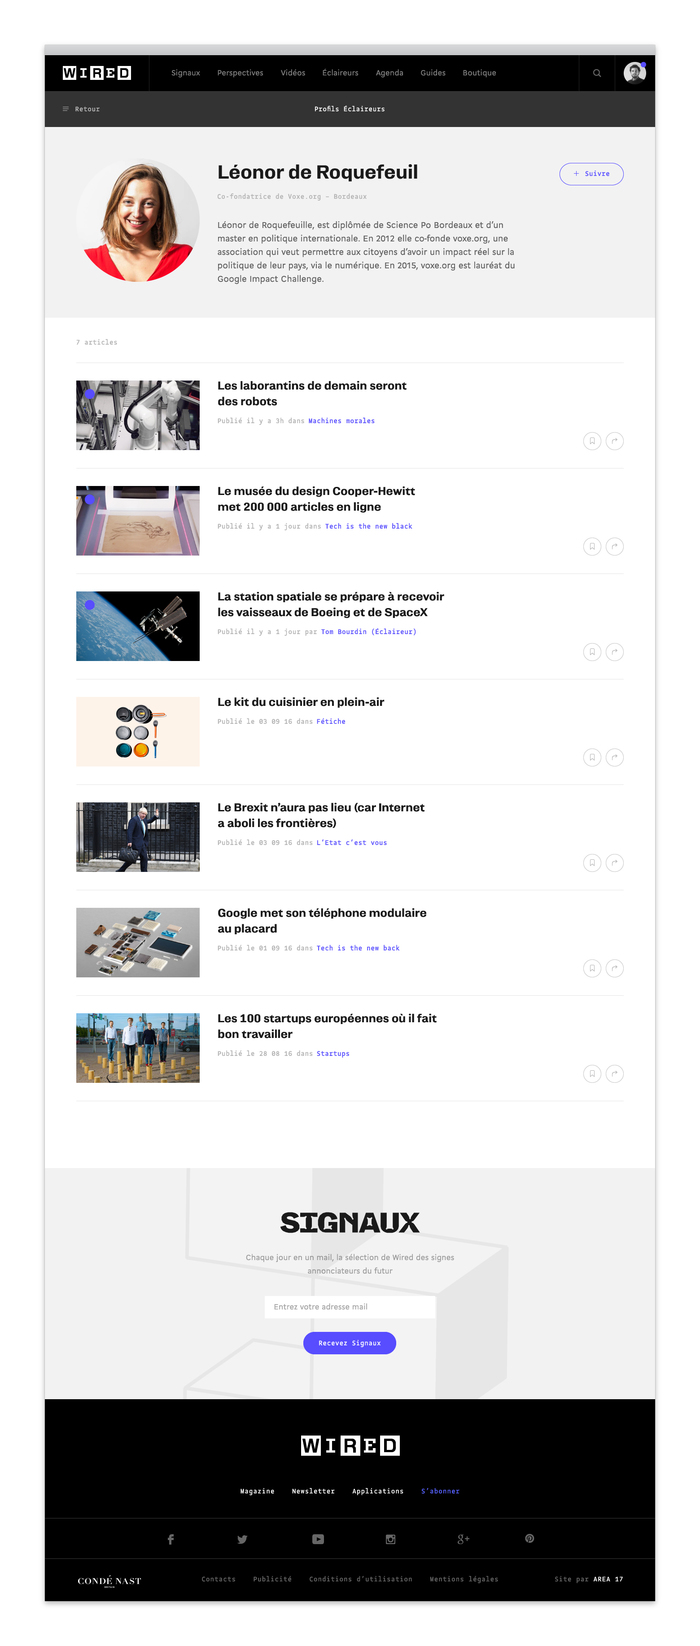 Wired France website 7